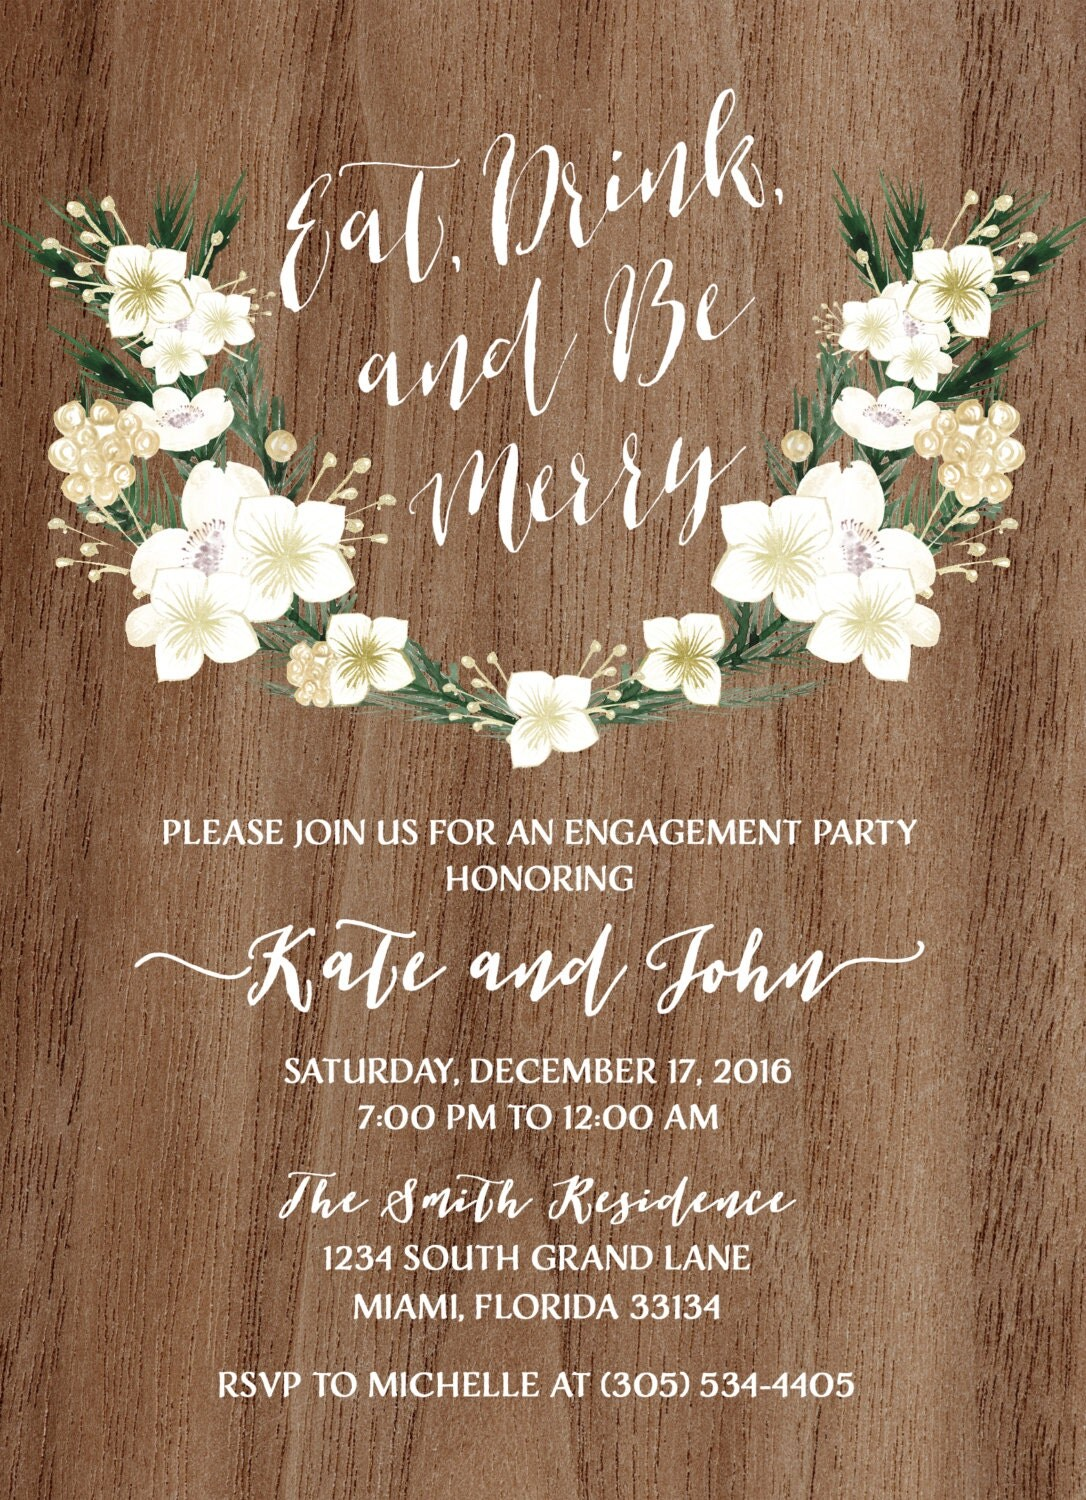 Rustic Engagement Party Invitation Eat Drink and Be Merry – Holiday Engagement Party Invitations